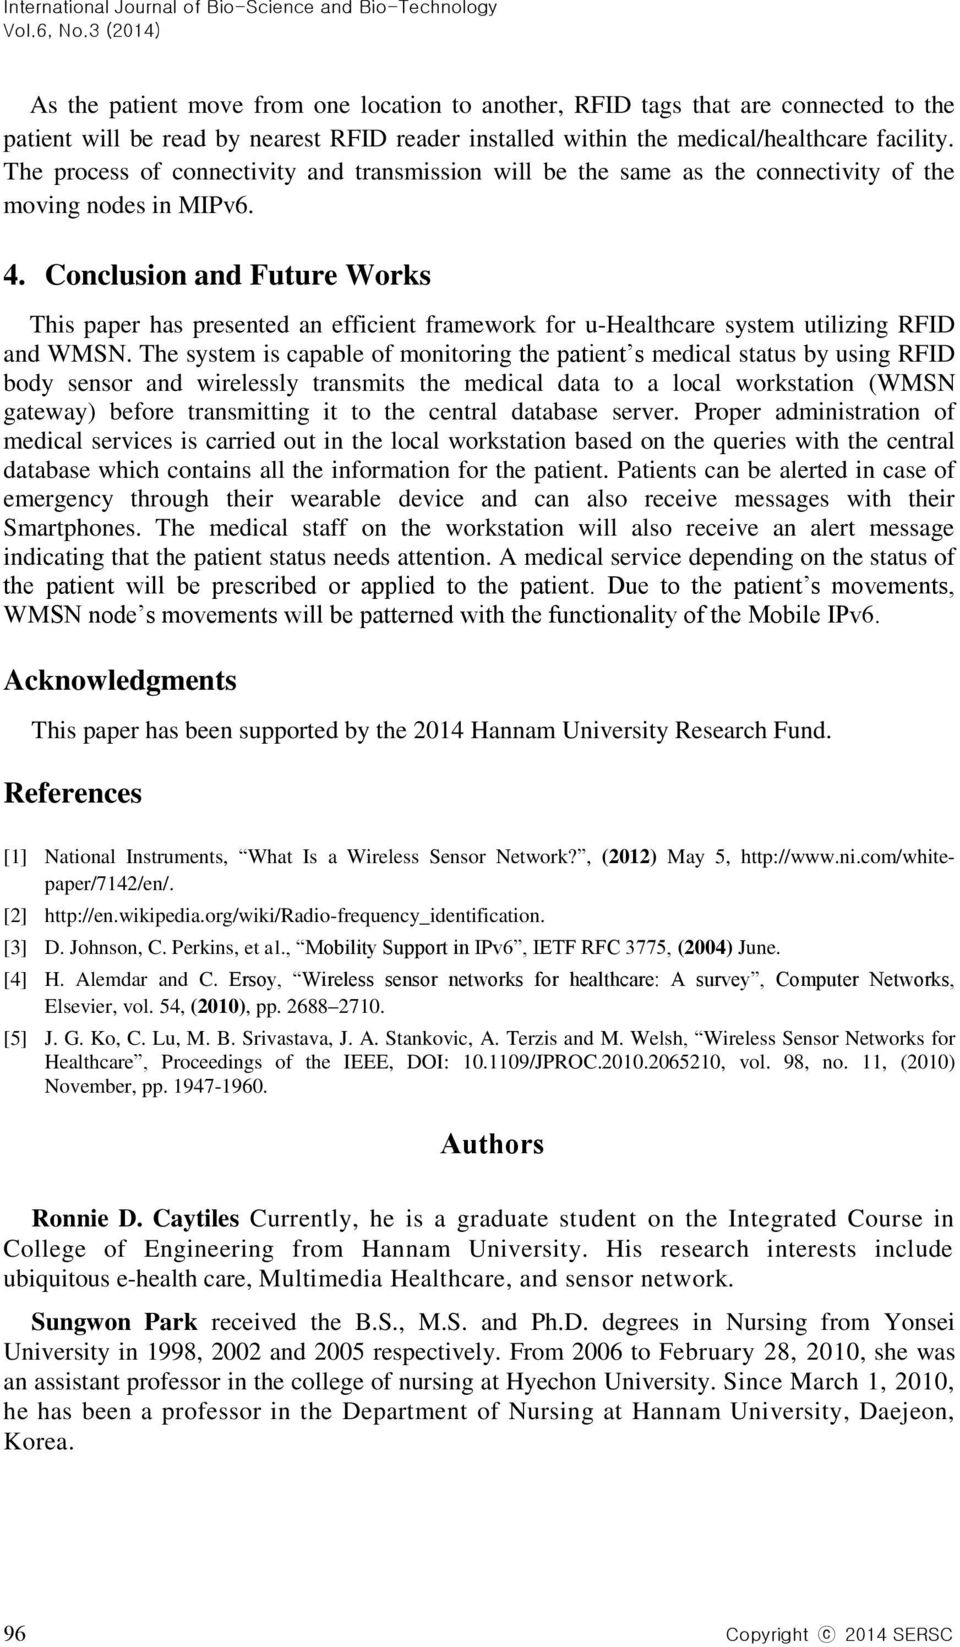 Conclusion and Future Works This paper has presented an efficient framework for u-healthcare system utilizing RFID and WMSN.